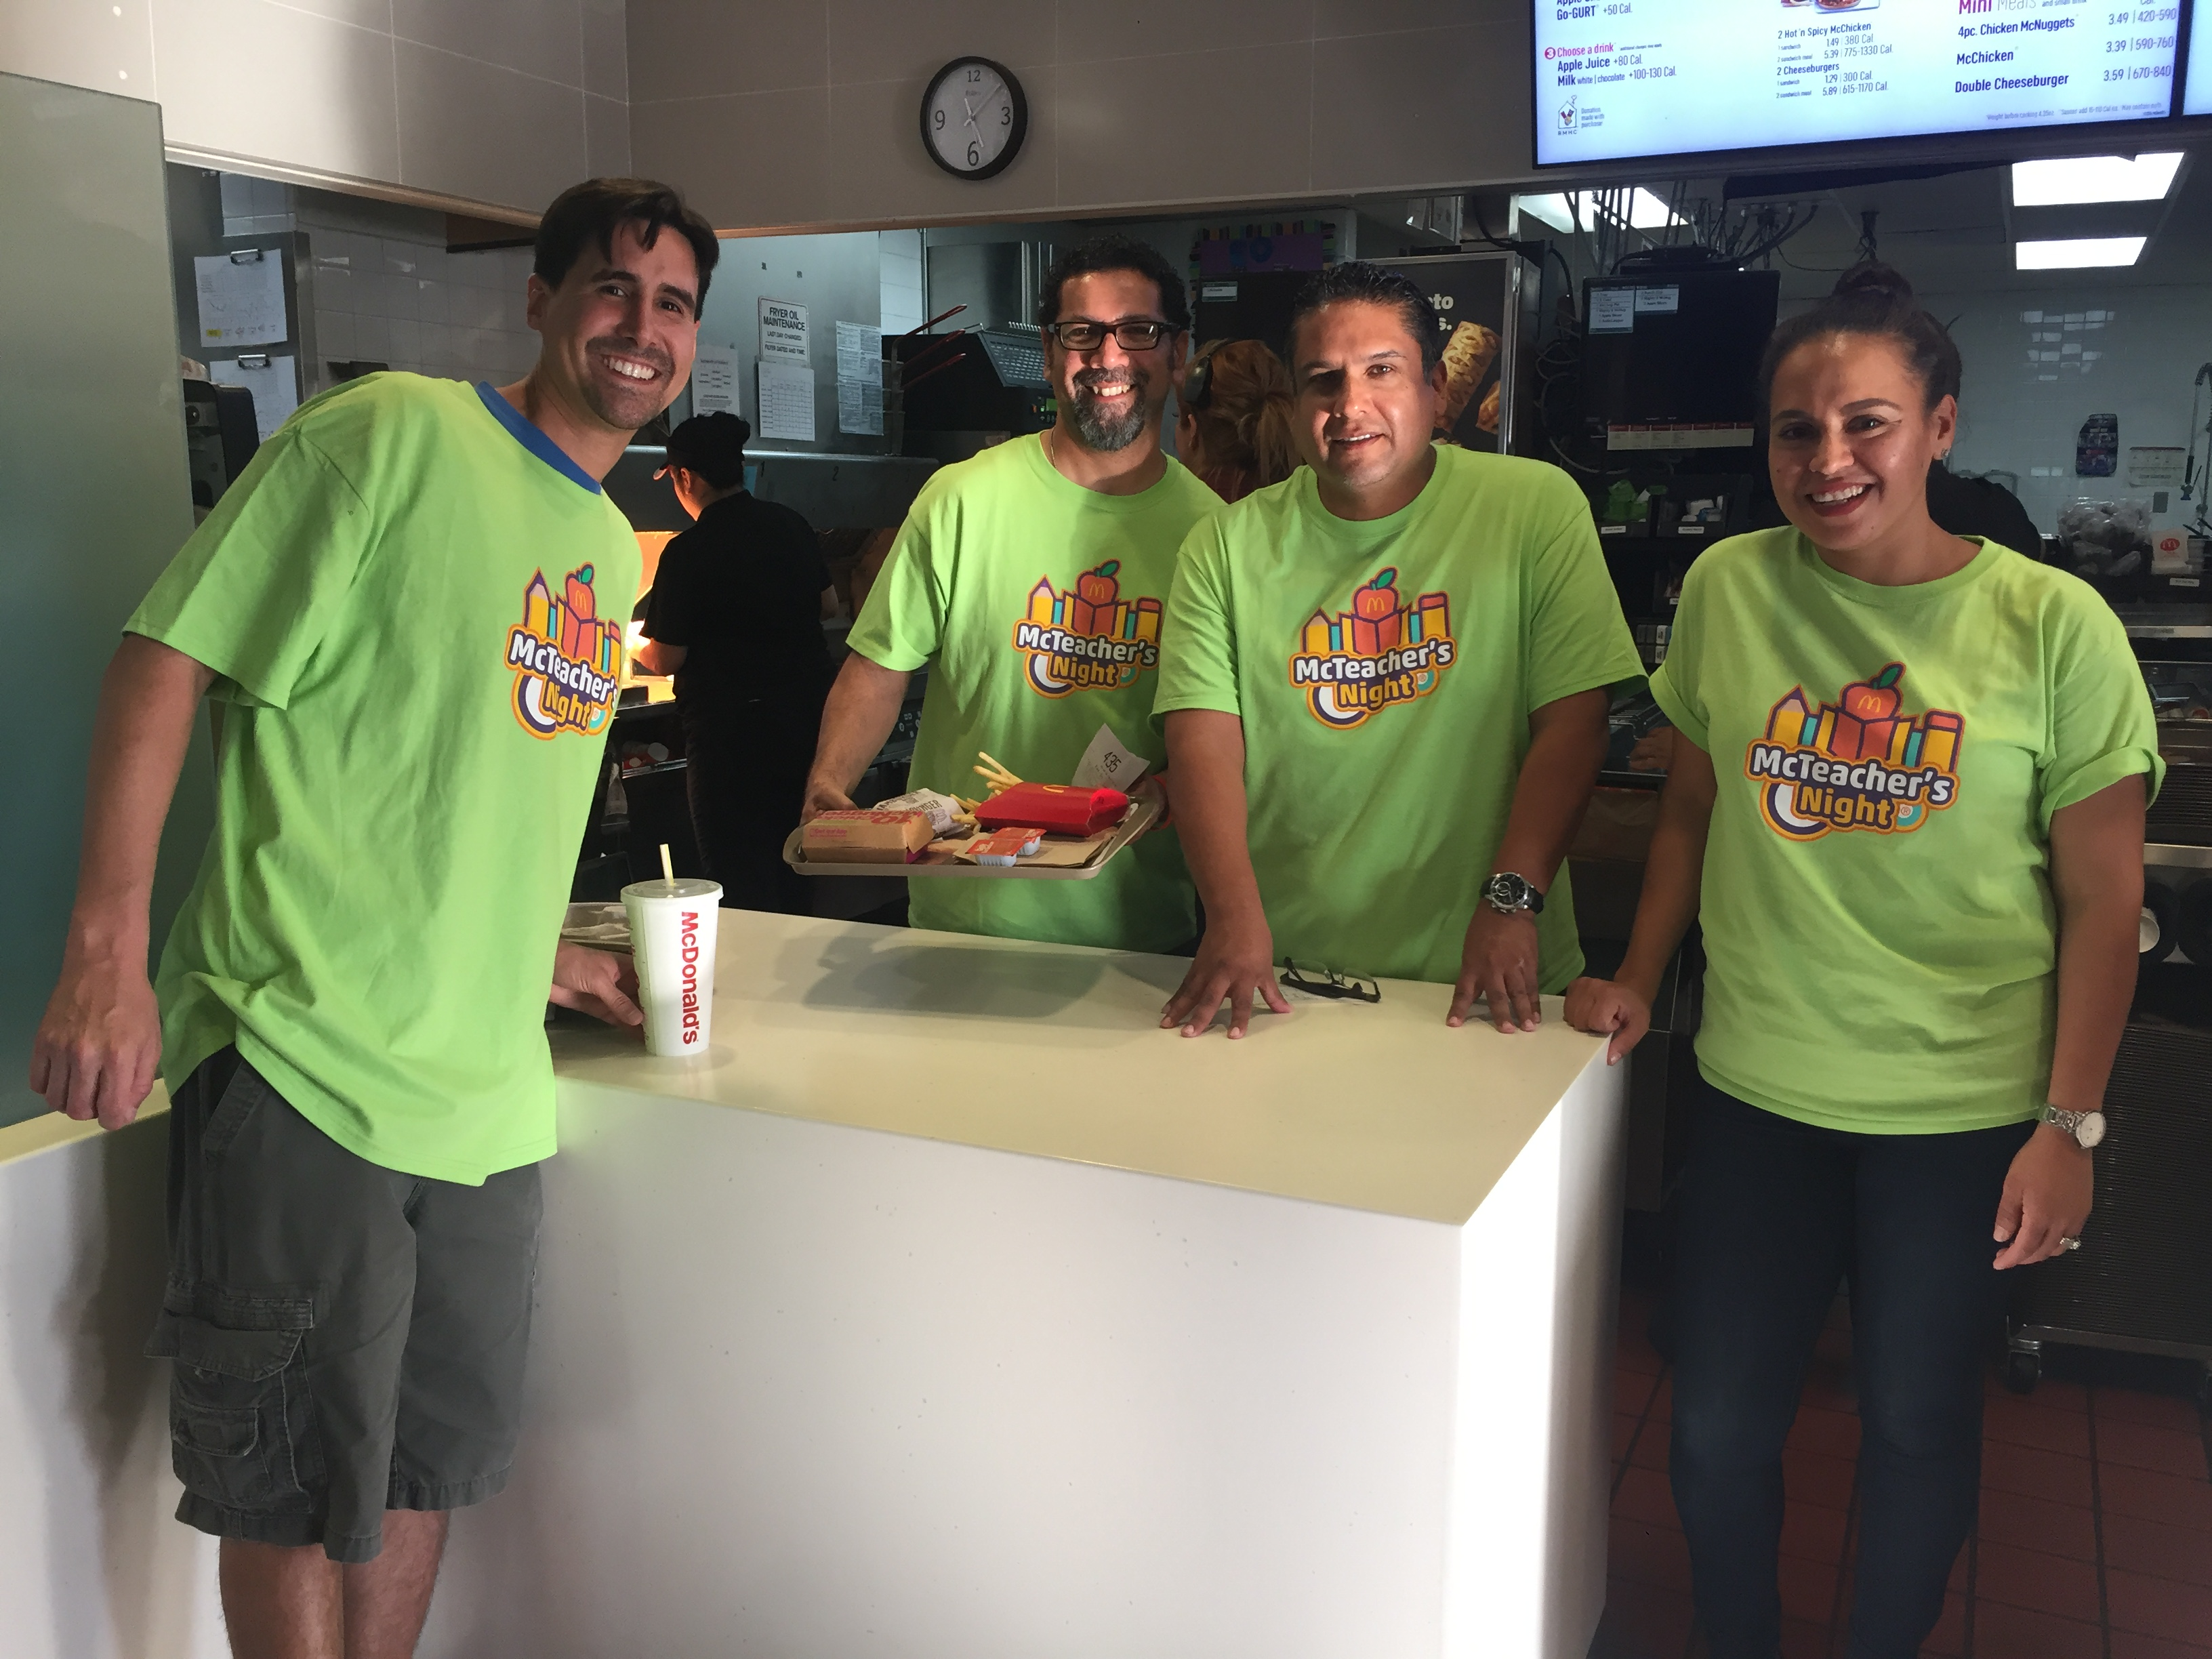 McTeacher Night!- Thank you for your support!